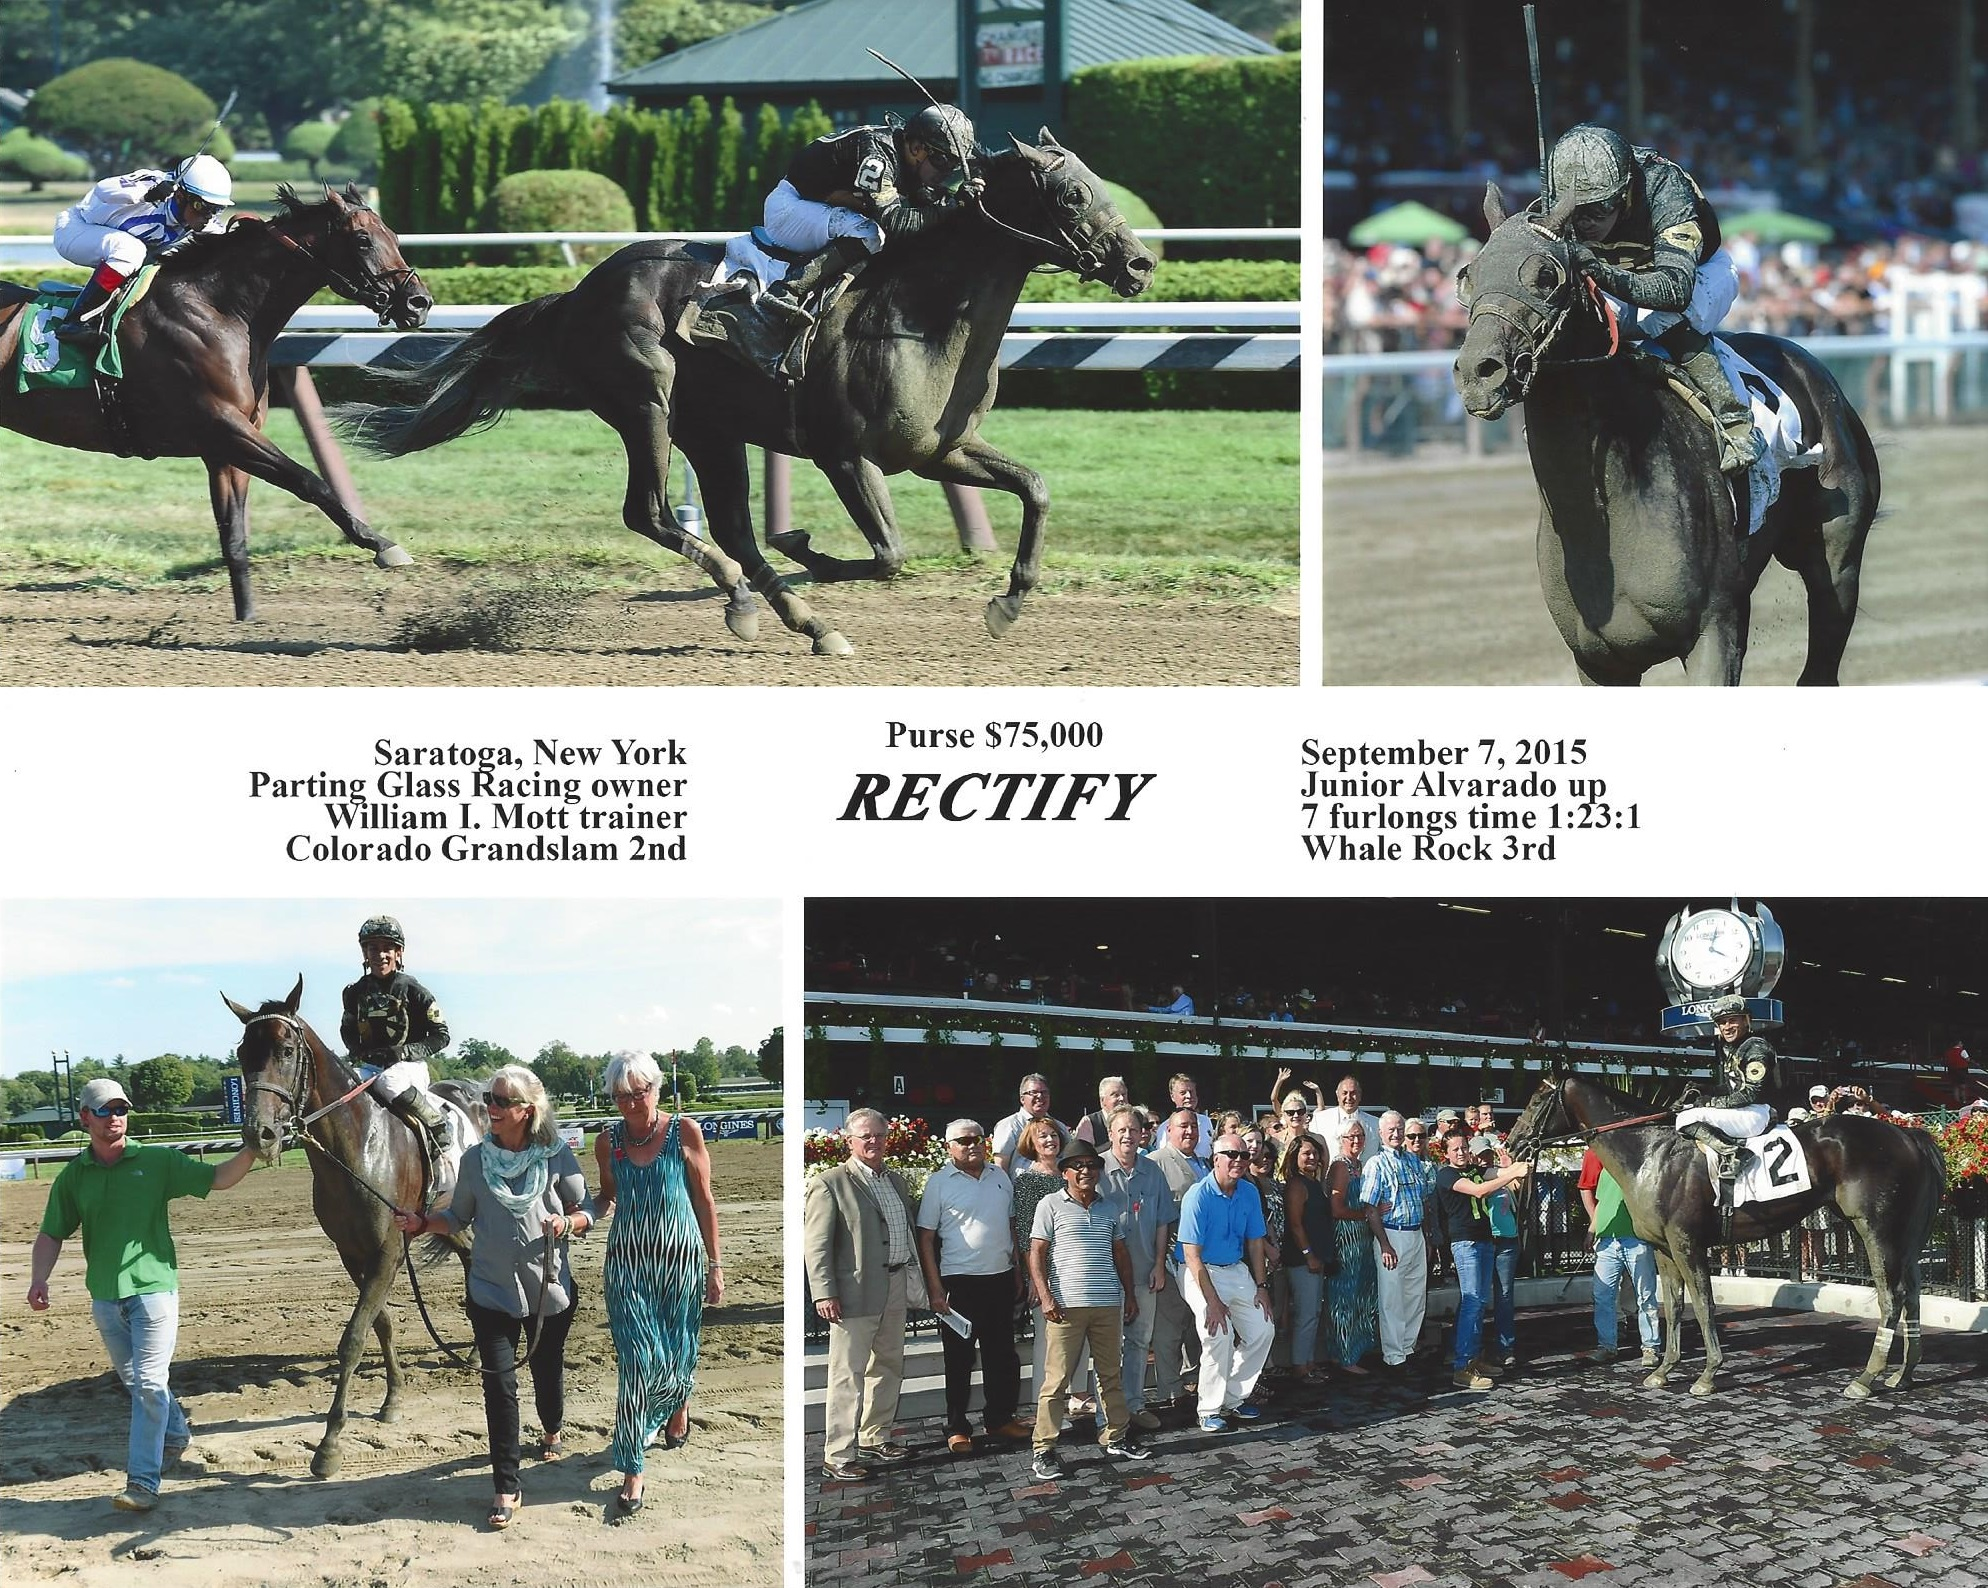 Rectify Win pic 9.7.15.jpg